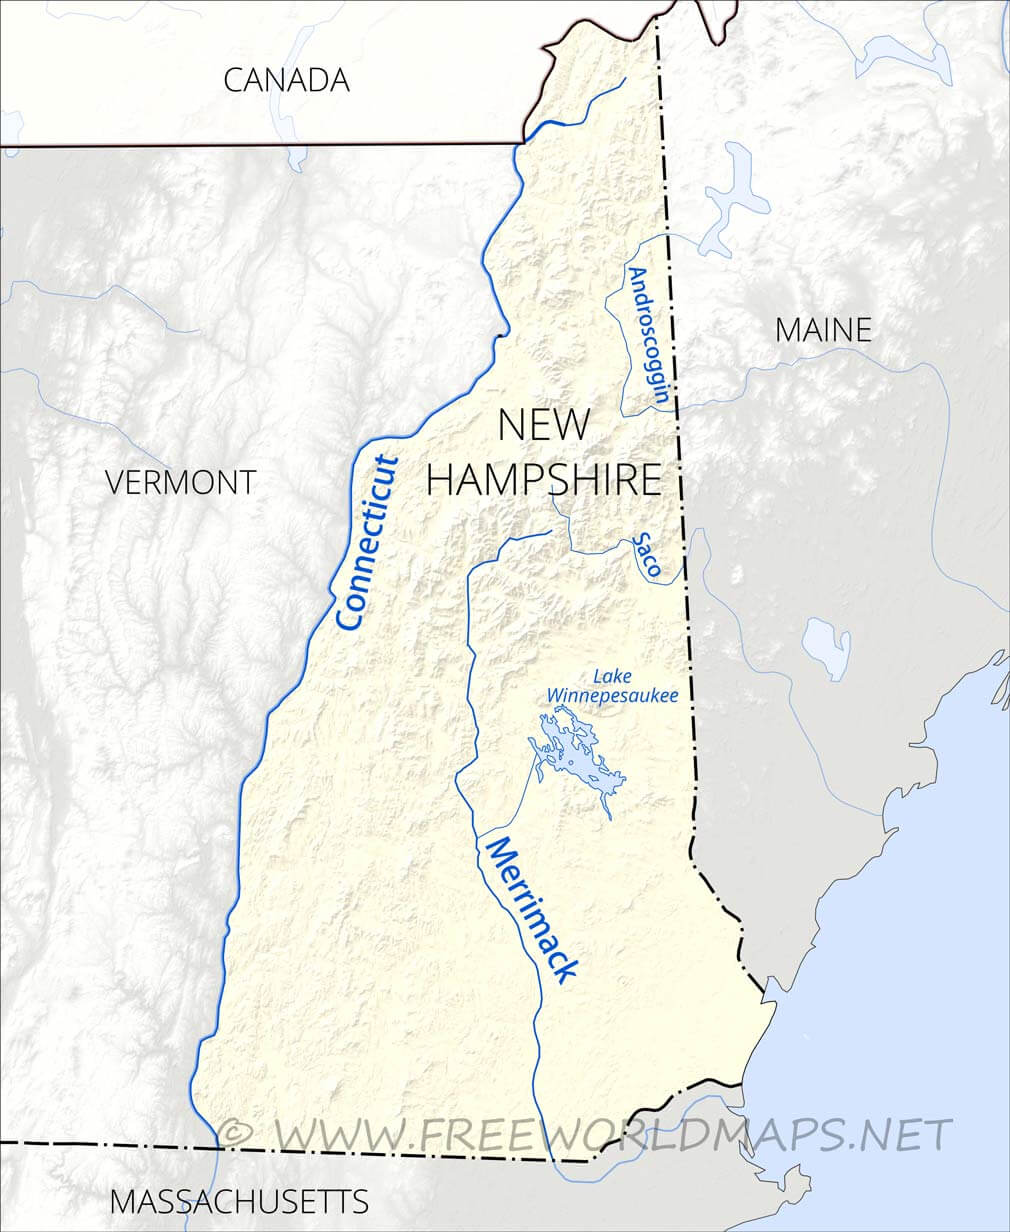 lakes in new hampshire map Physical Map Of New Hampshire lakes in new hampshire map